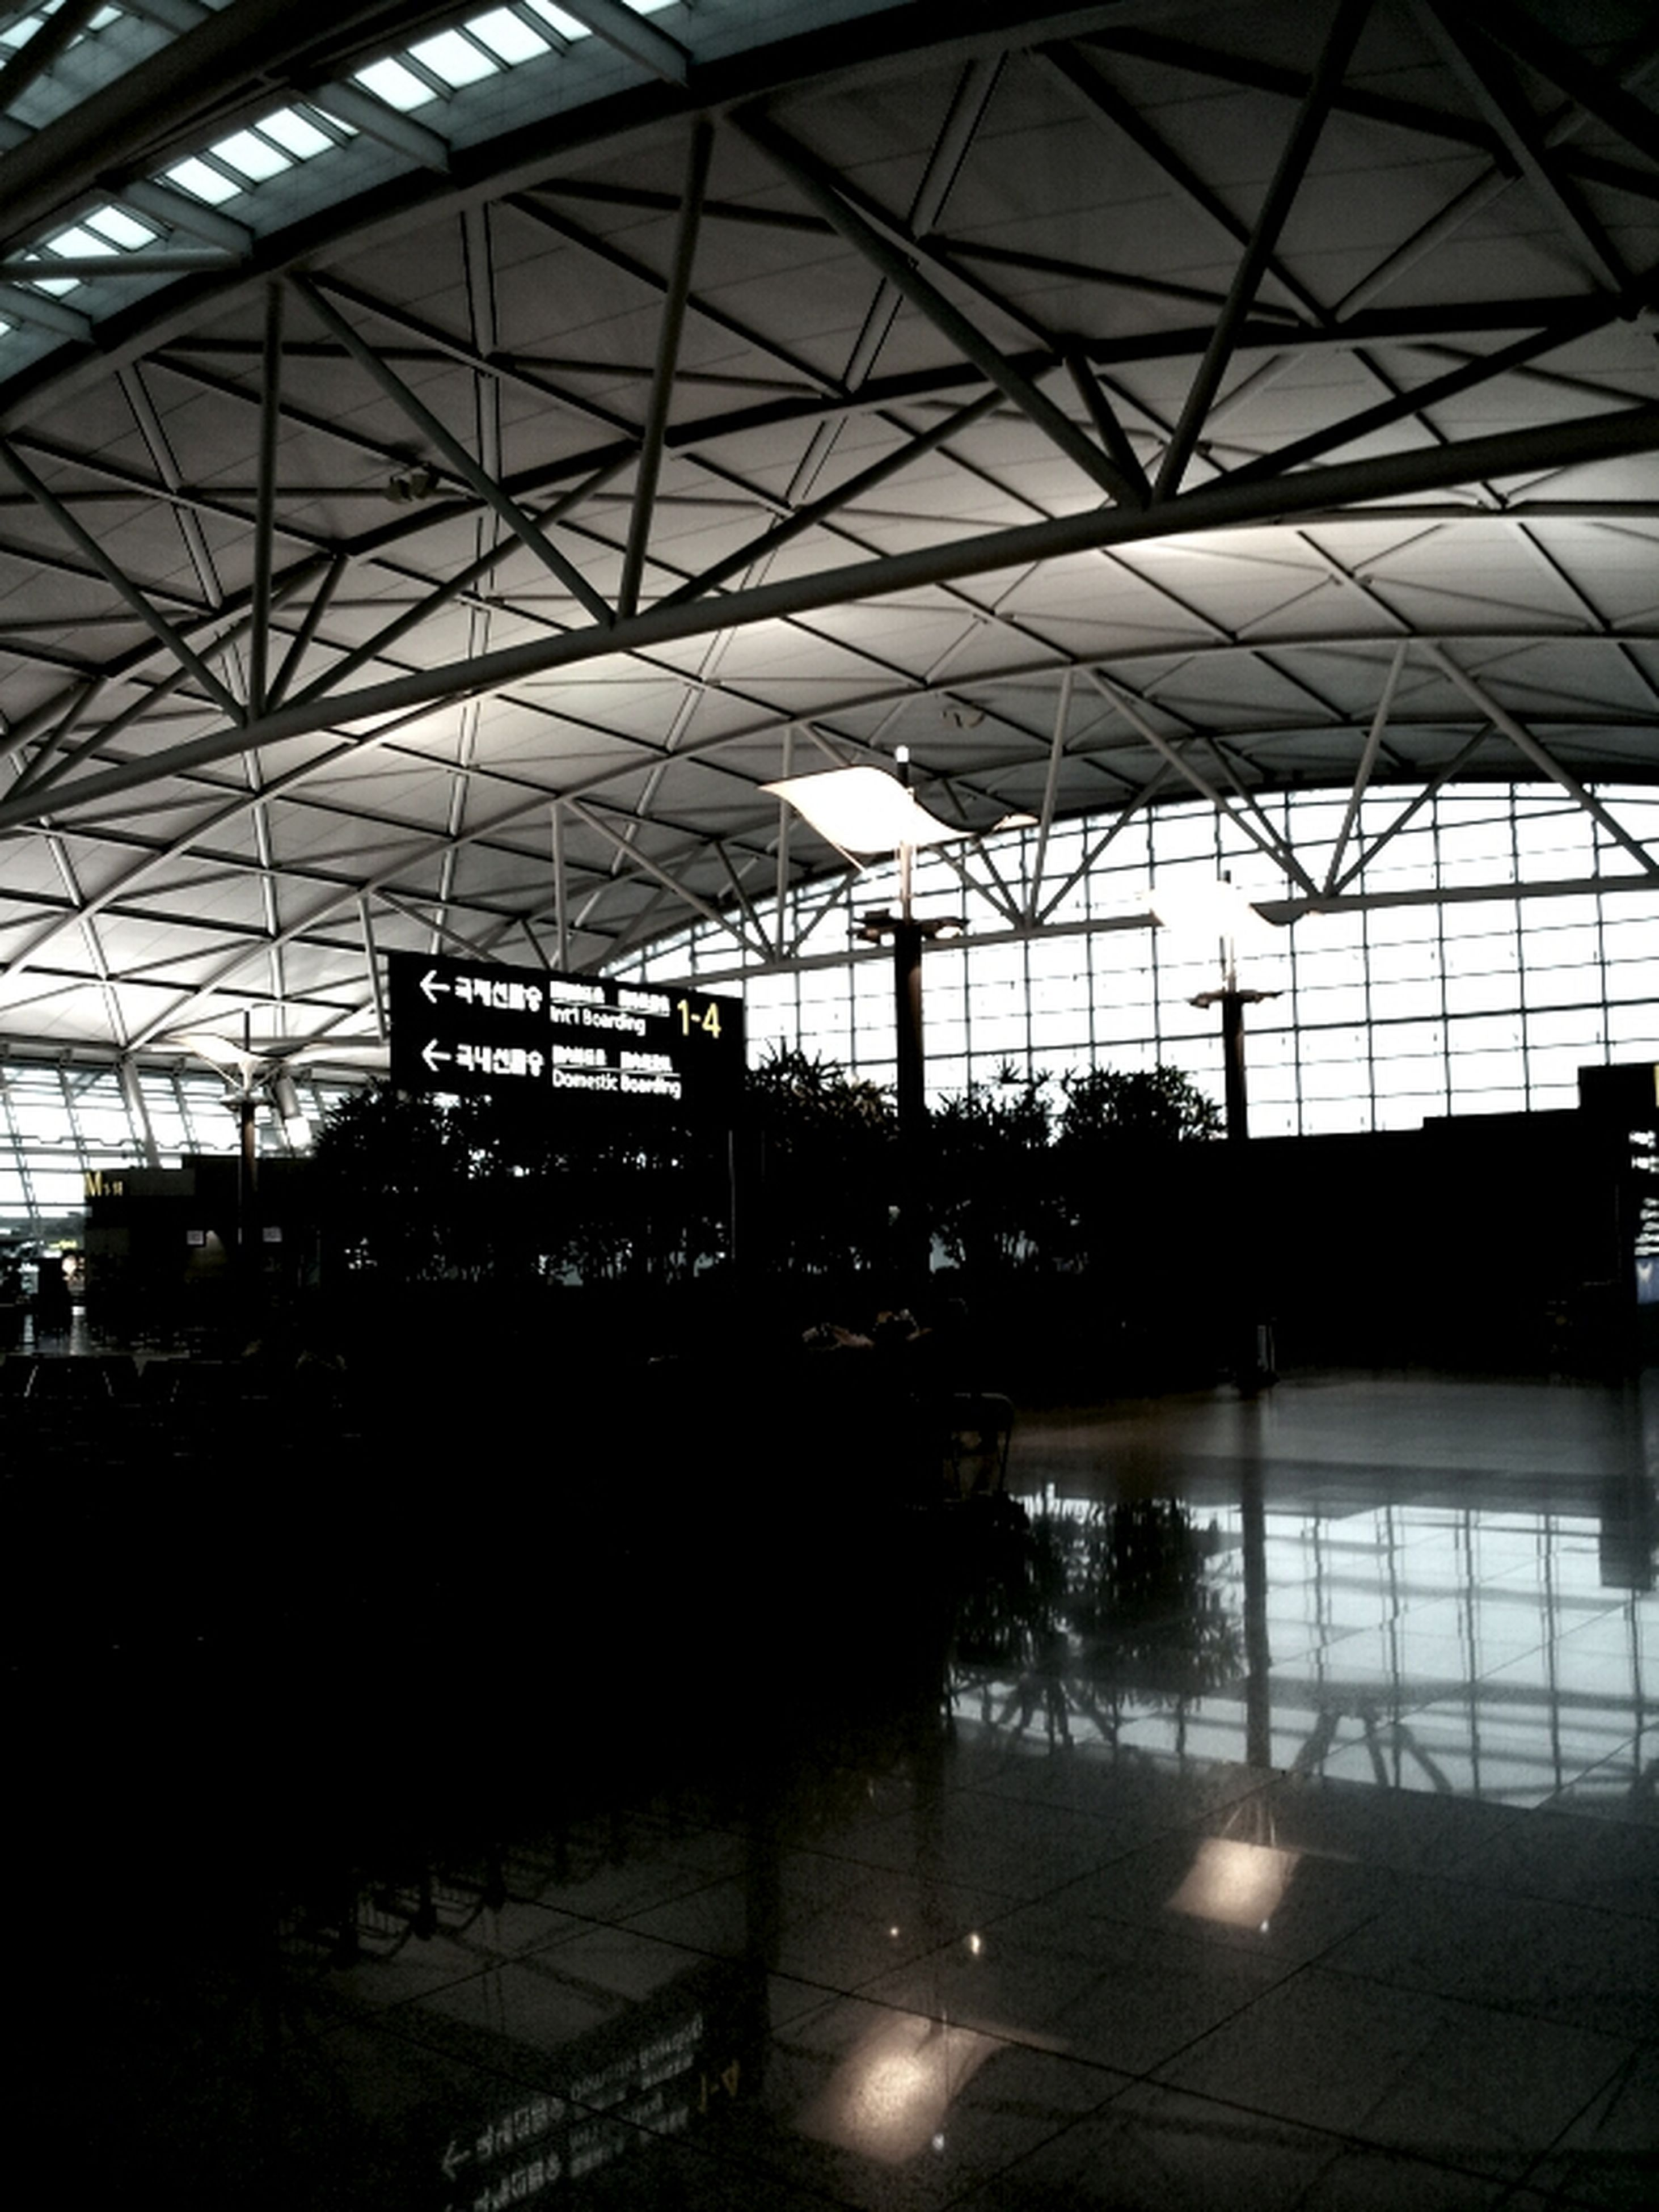 indoors, ceiling, glass - material, built structure, architecture, window, transparent, reflection, silhouette, interior, illuminated, glass, sunlight, modern, no people, railroad station, skylight, flooring, transportation, day